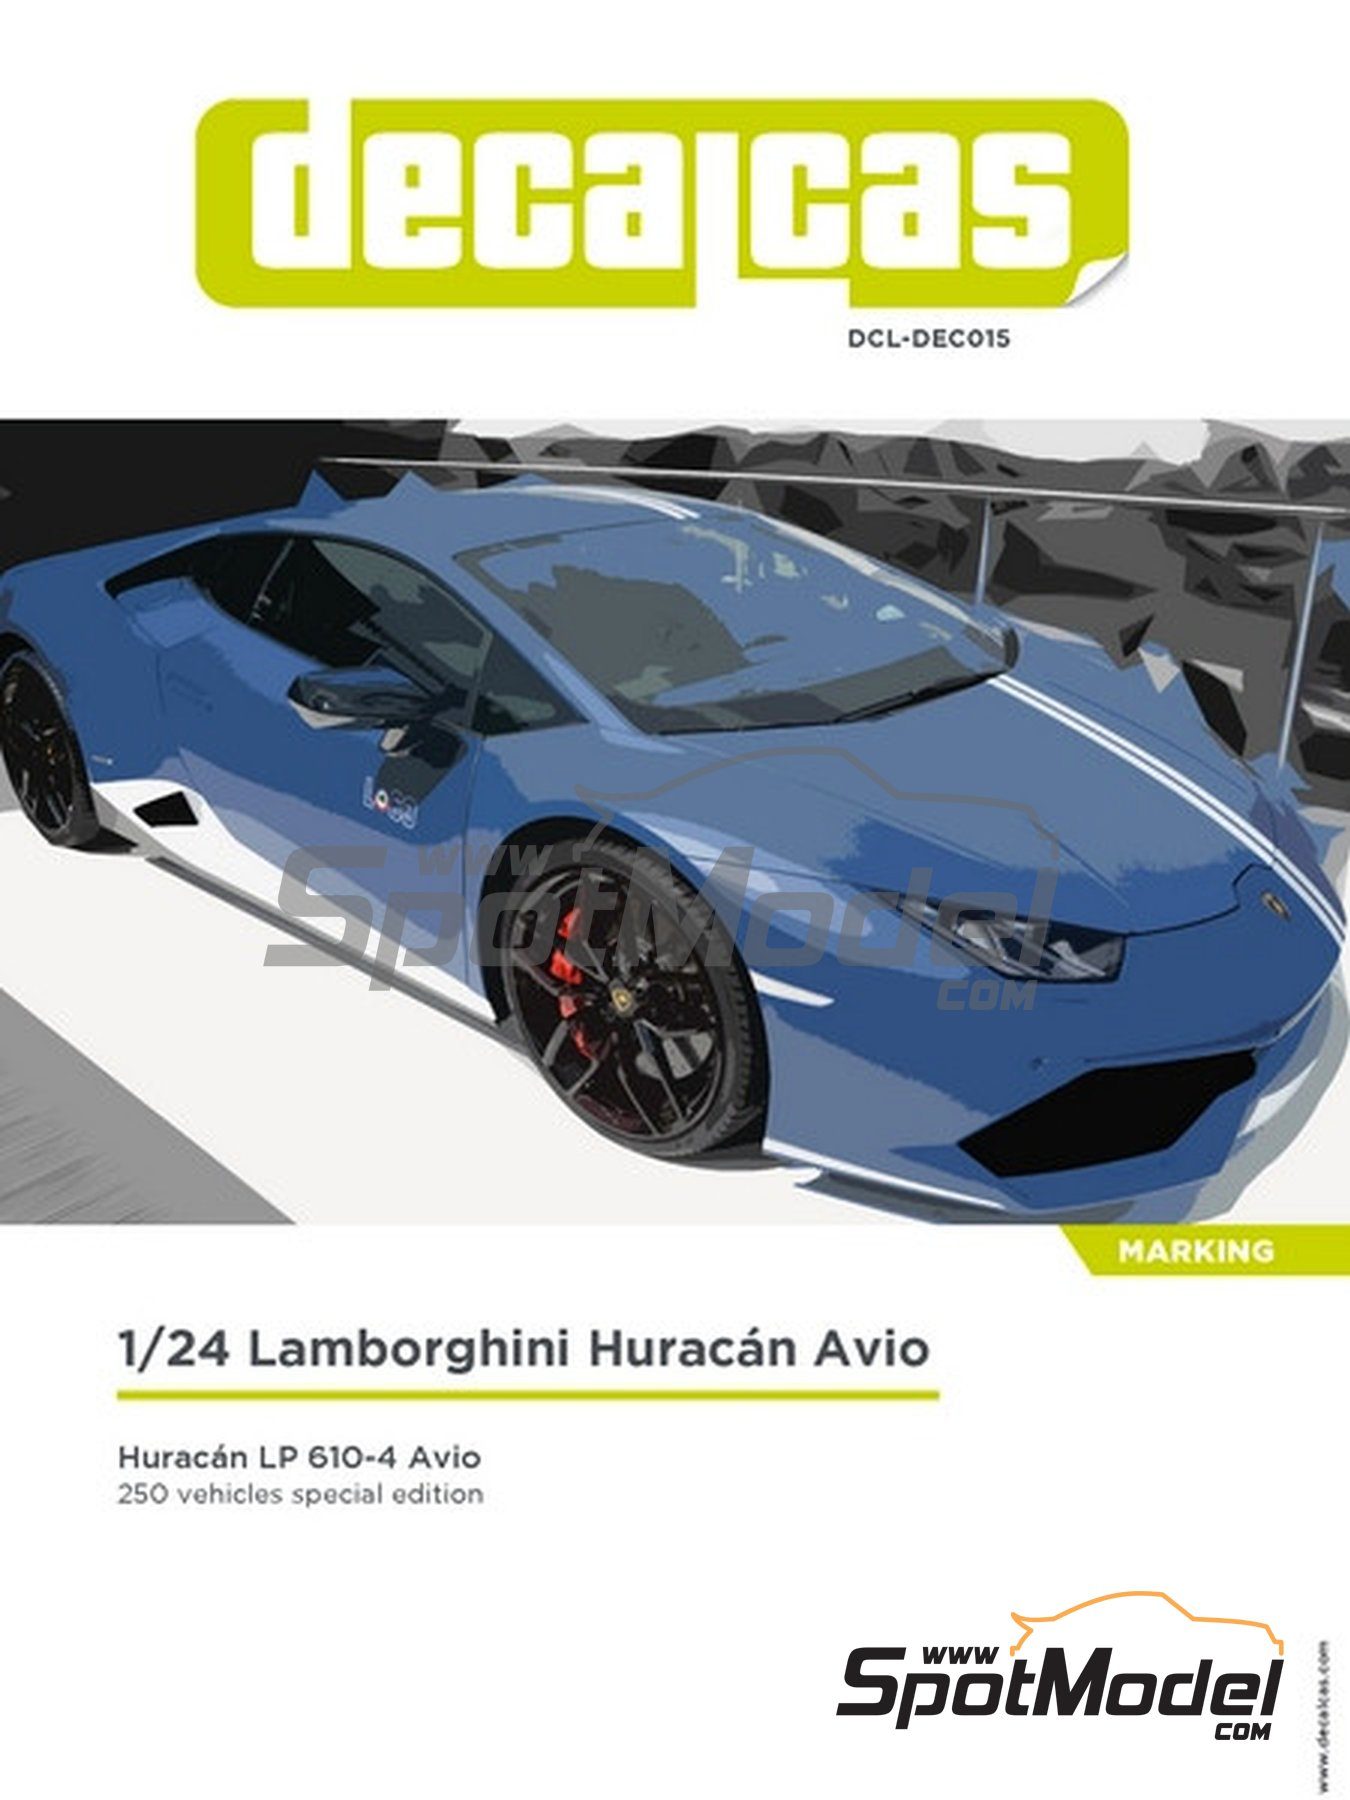 Lamborghini Huracán LP 610-4 Avio | Marking / livery in 1/24 scale manufactured by Decalcas (ref. DCL-DEC015) image